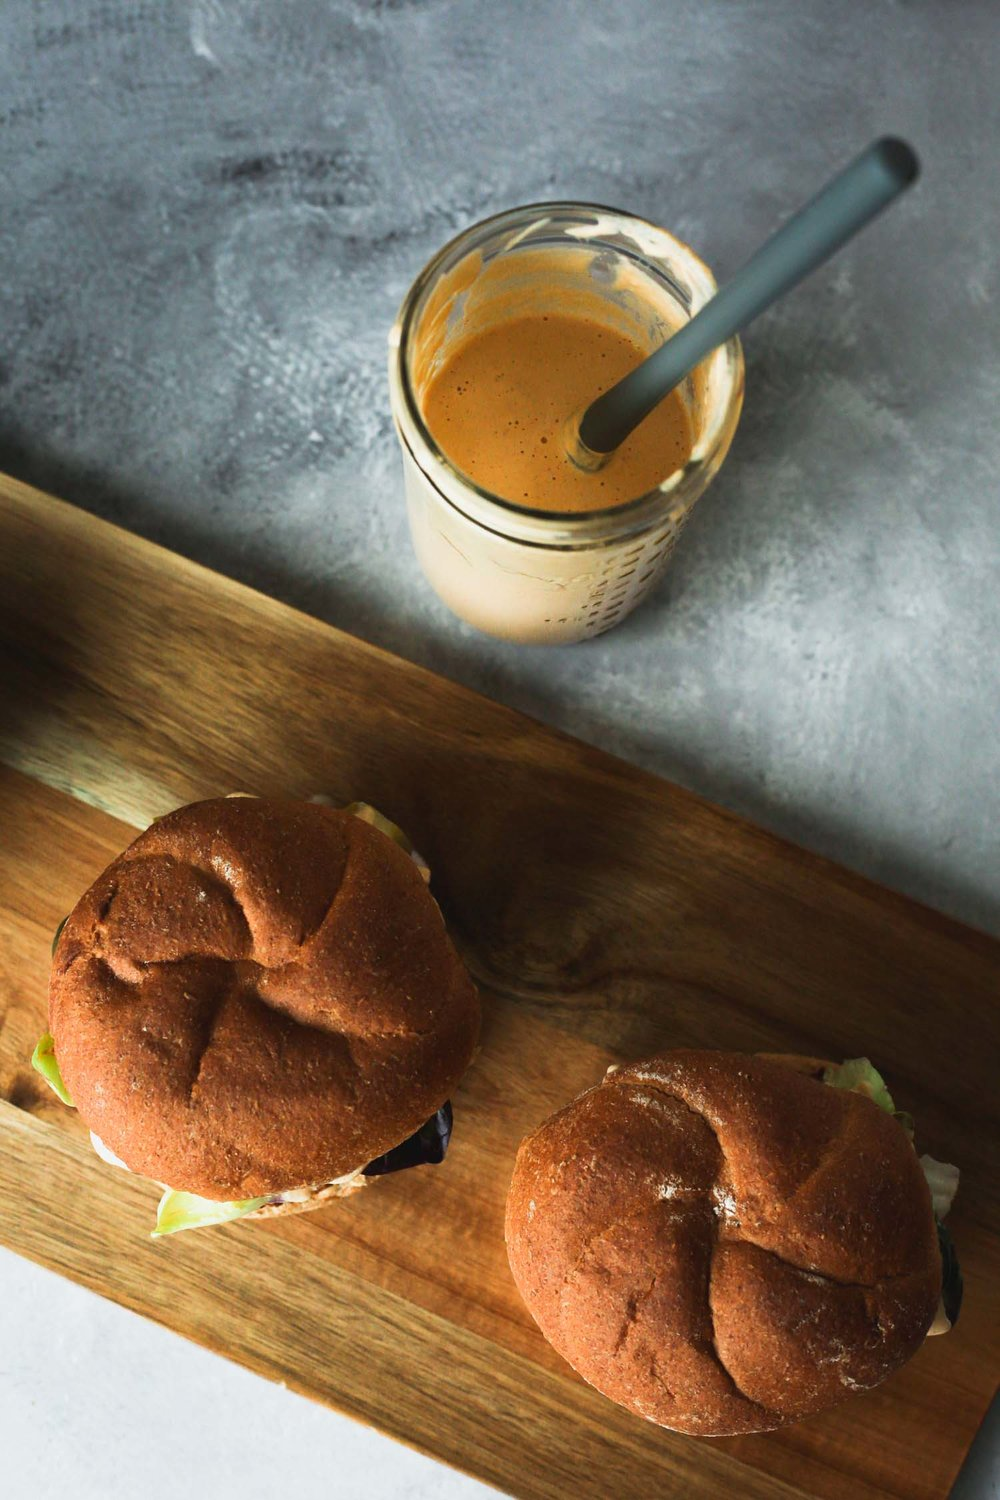 Smoky Tangy Cream from the Vegan Burgers and Burritos cookbook by Sophia DeSantos, Photo by Kari of Beautiful ingredient